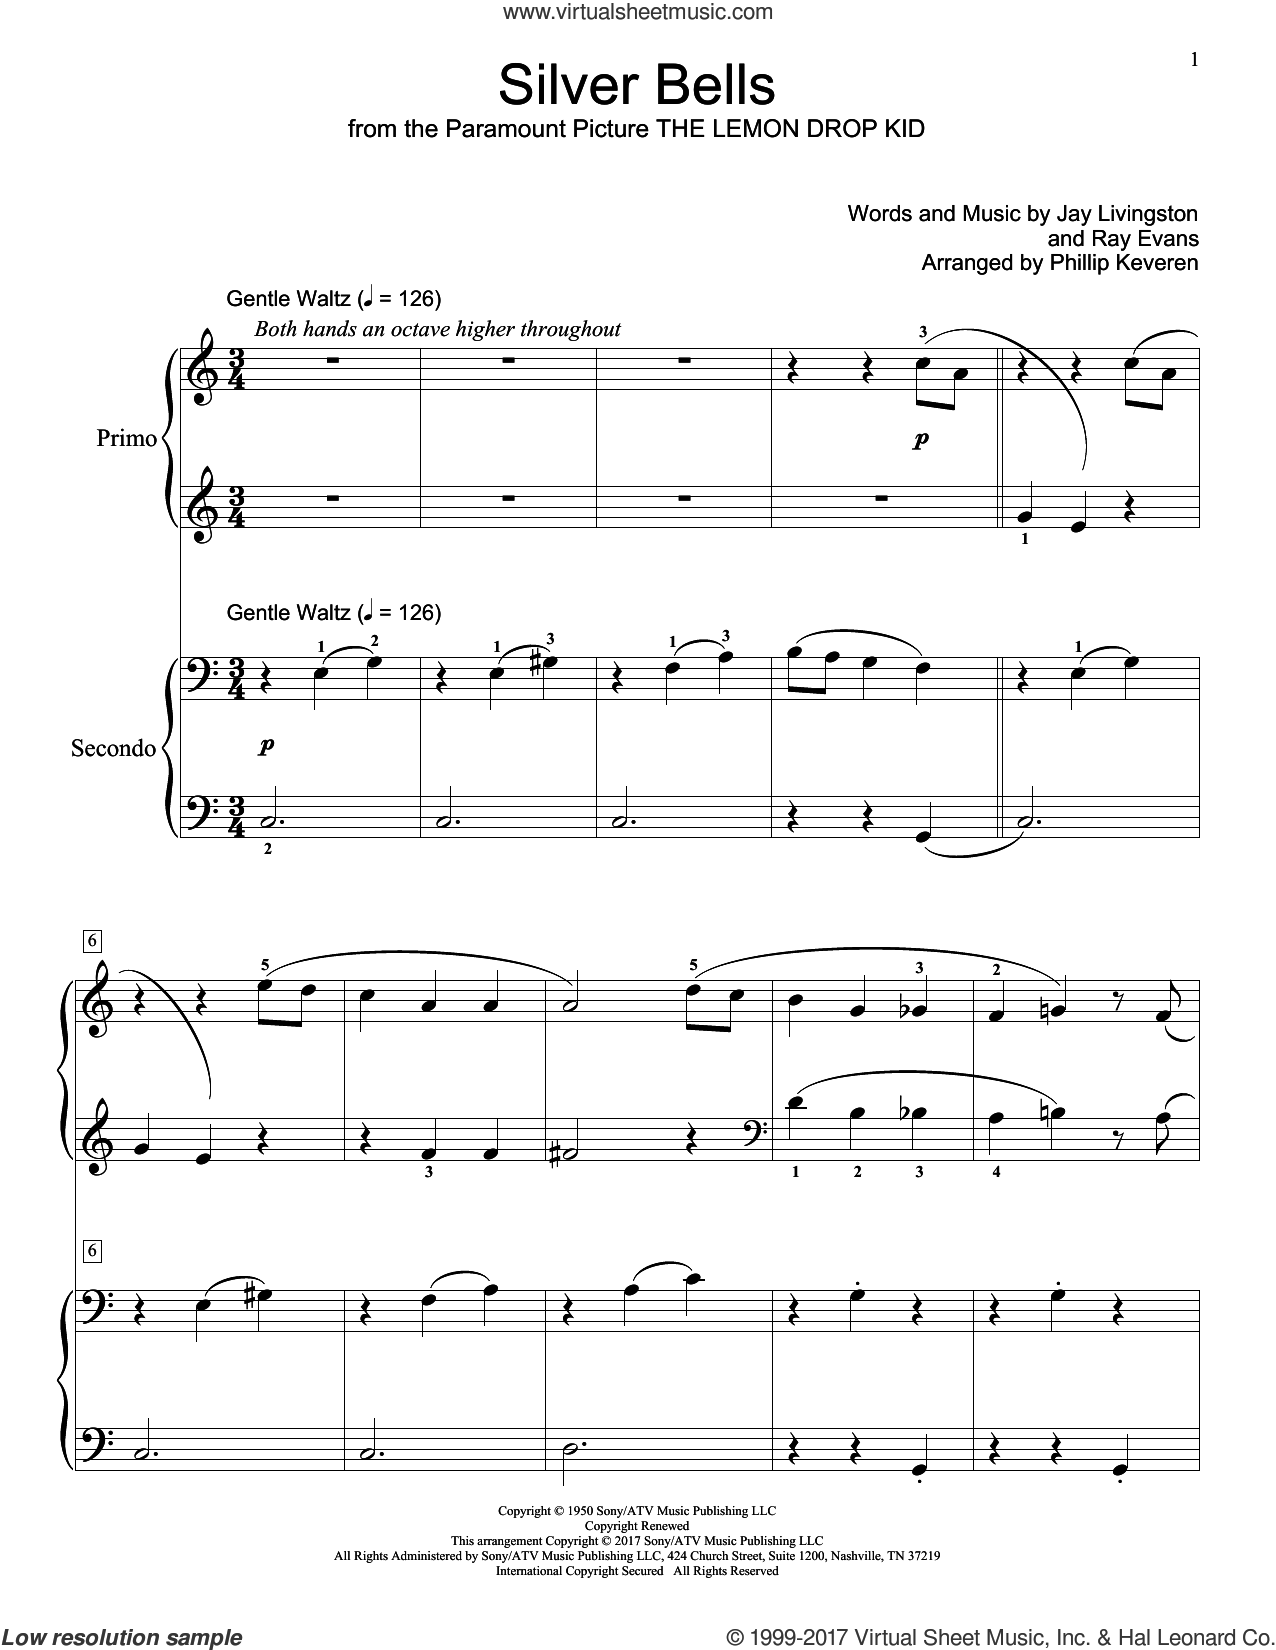 Silver Bells sheet music for piano four hands by Jay Livingston and Ray Evans, intermediate skill level